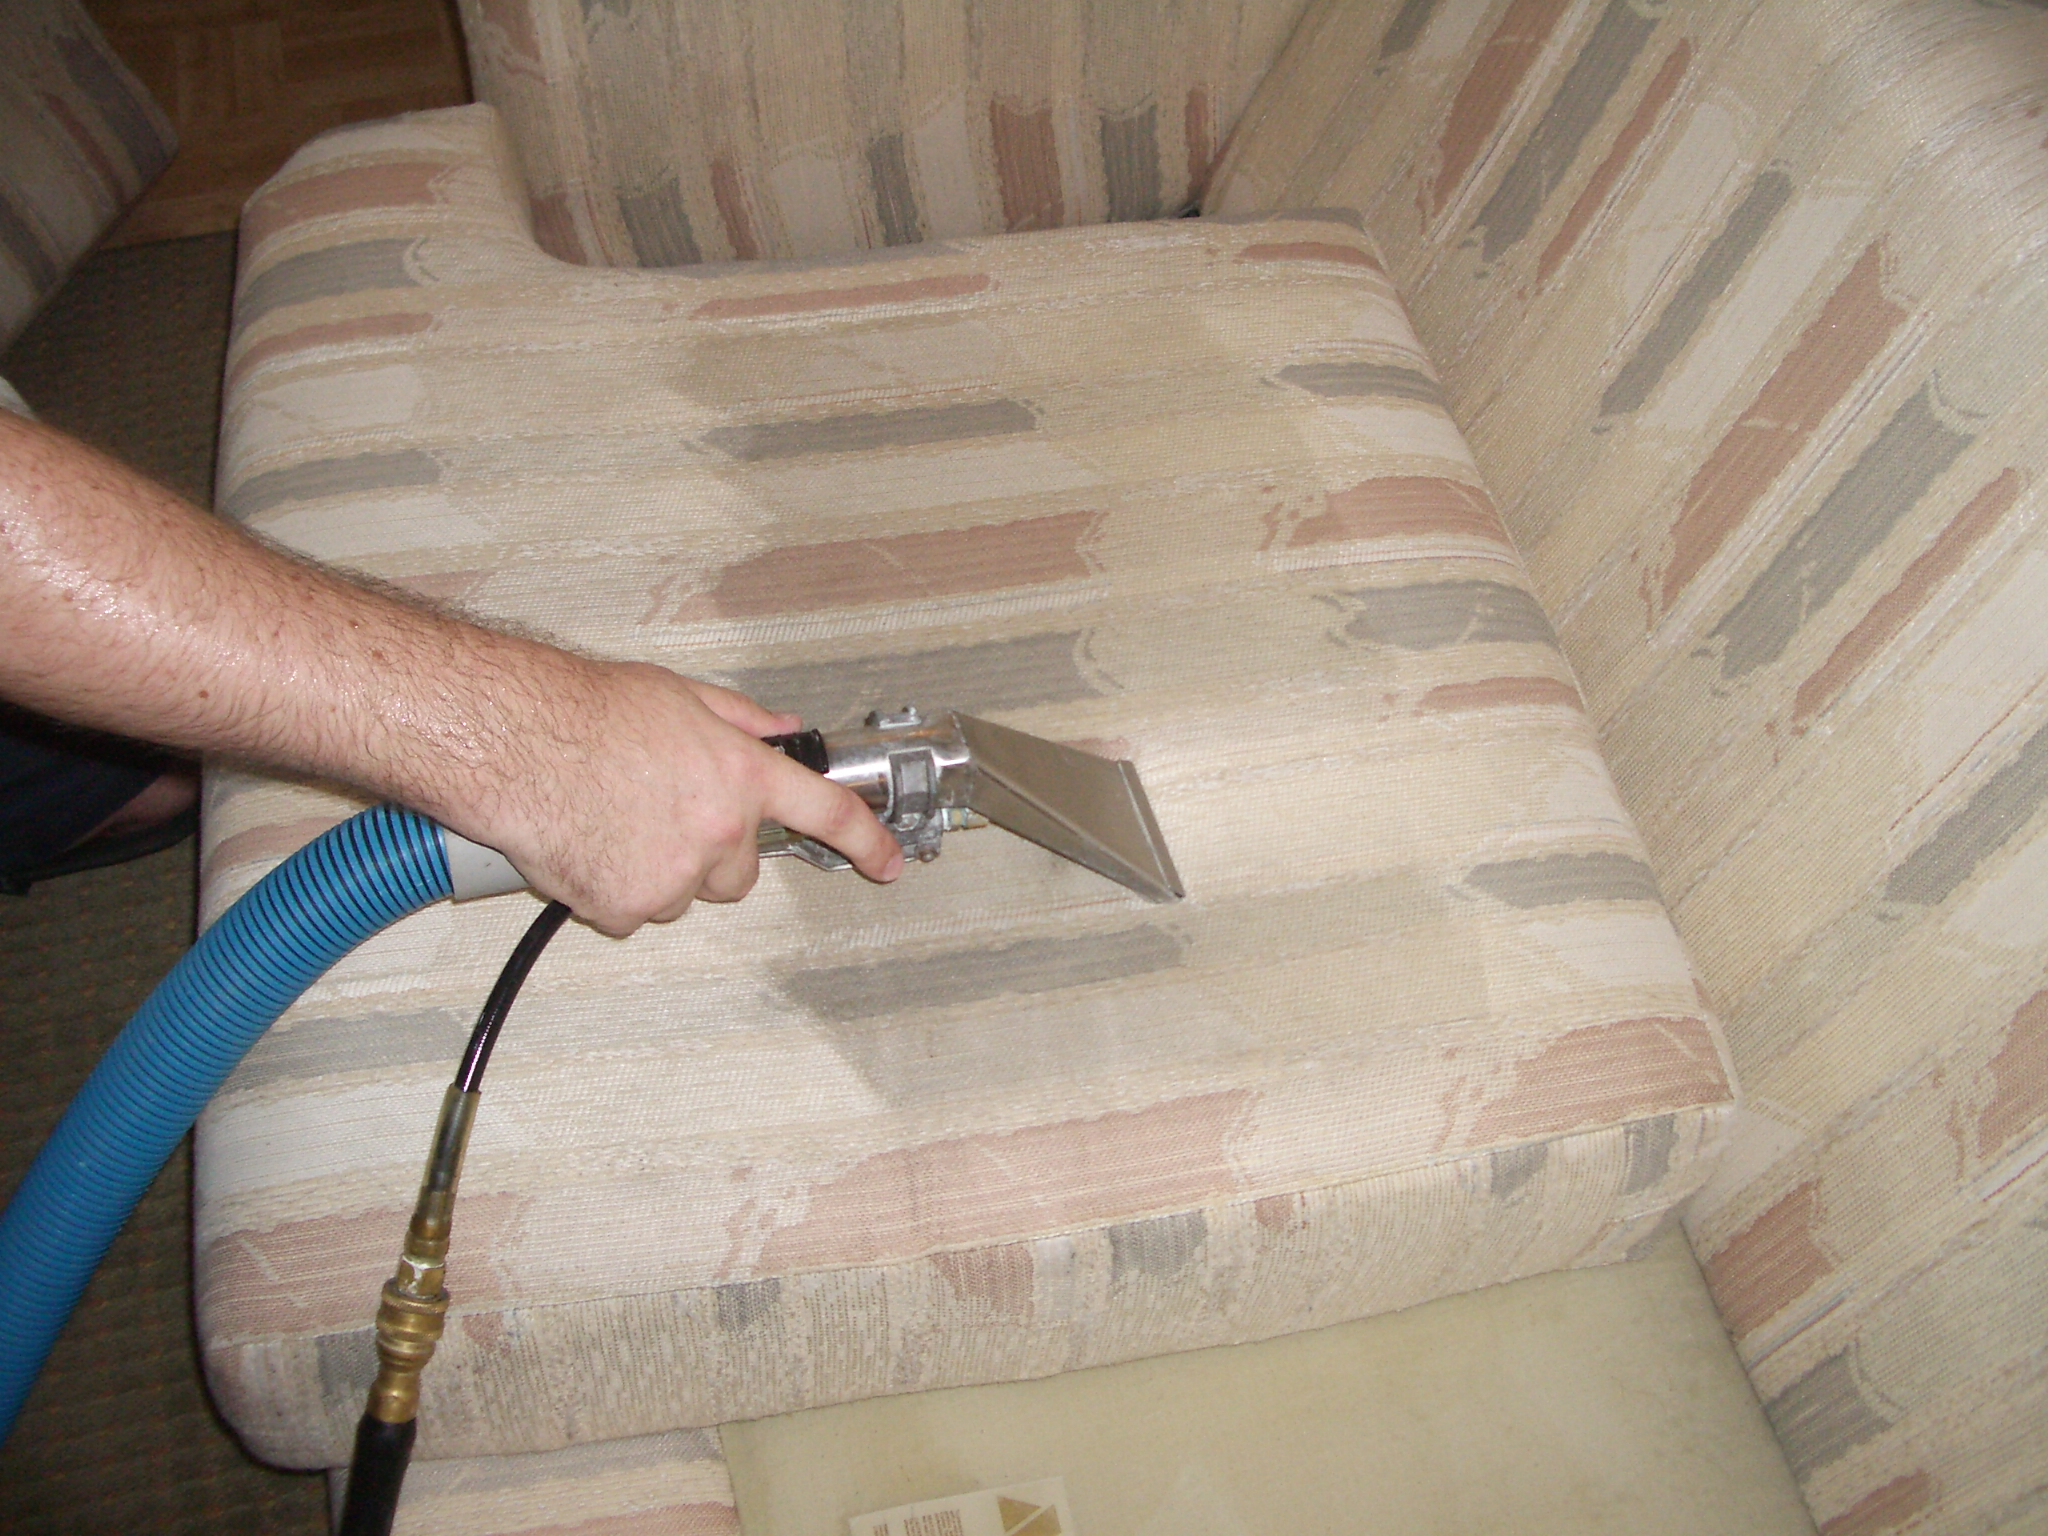 How To Hire Upholstery Cleaning Services Malarkey39s Pub